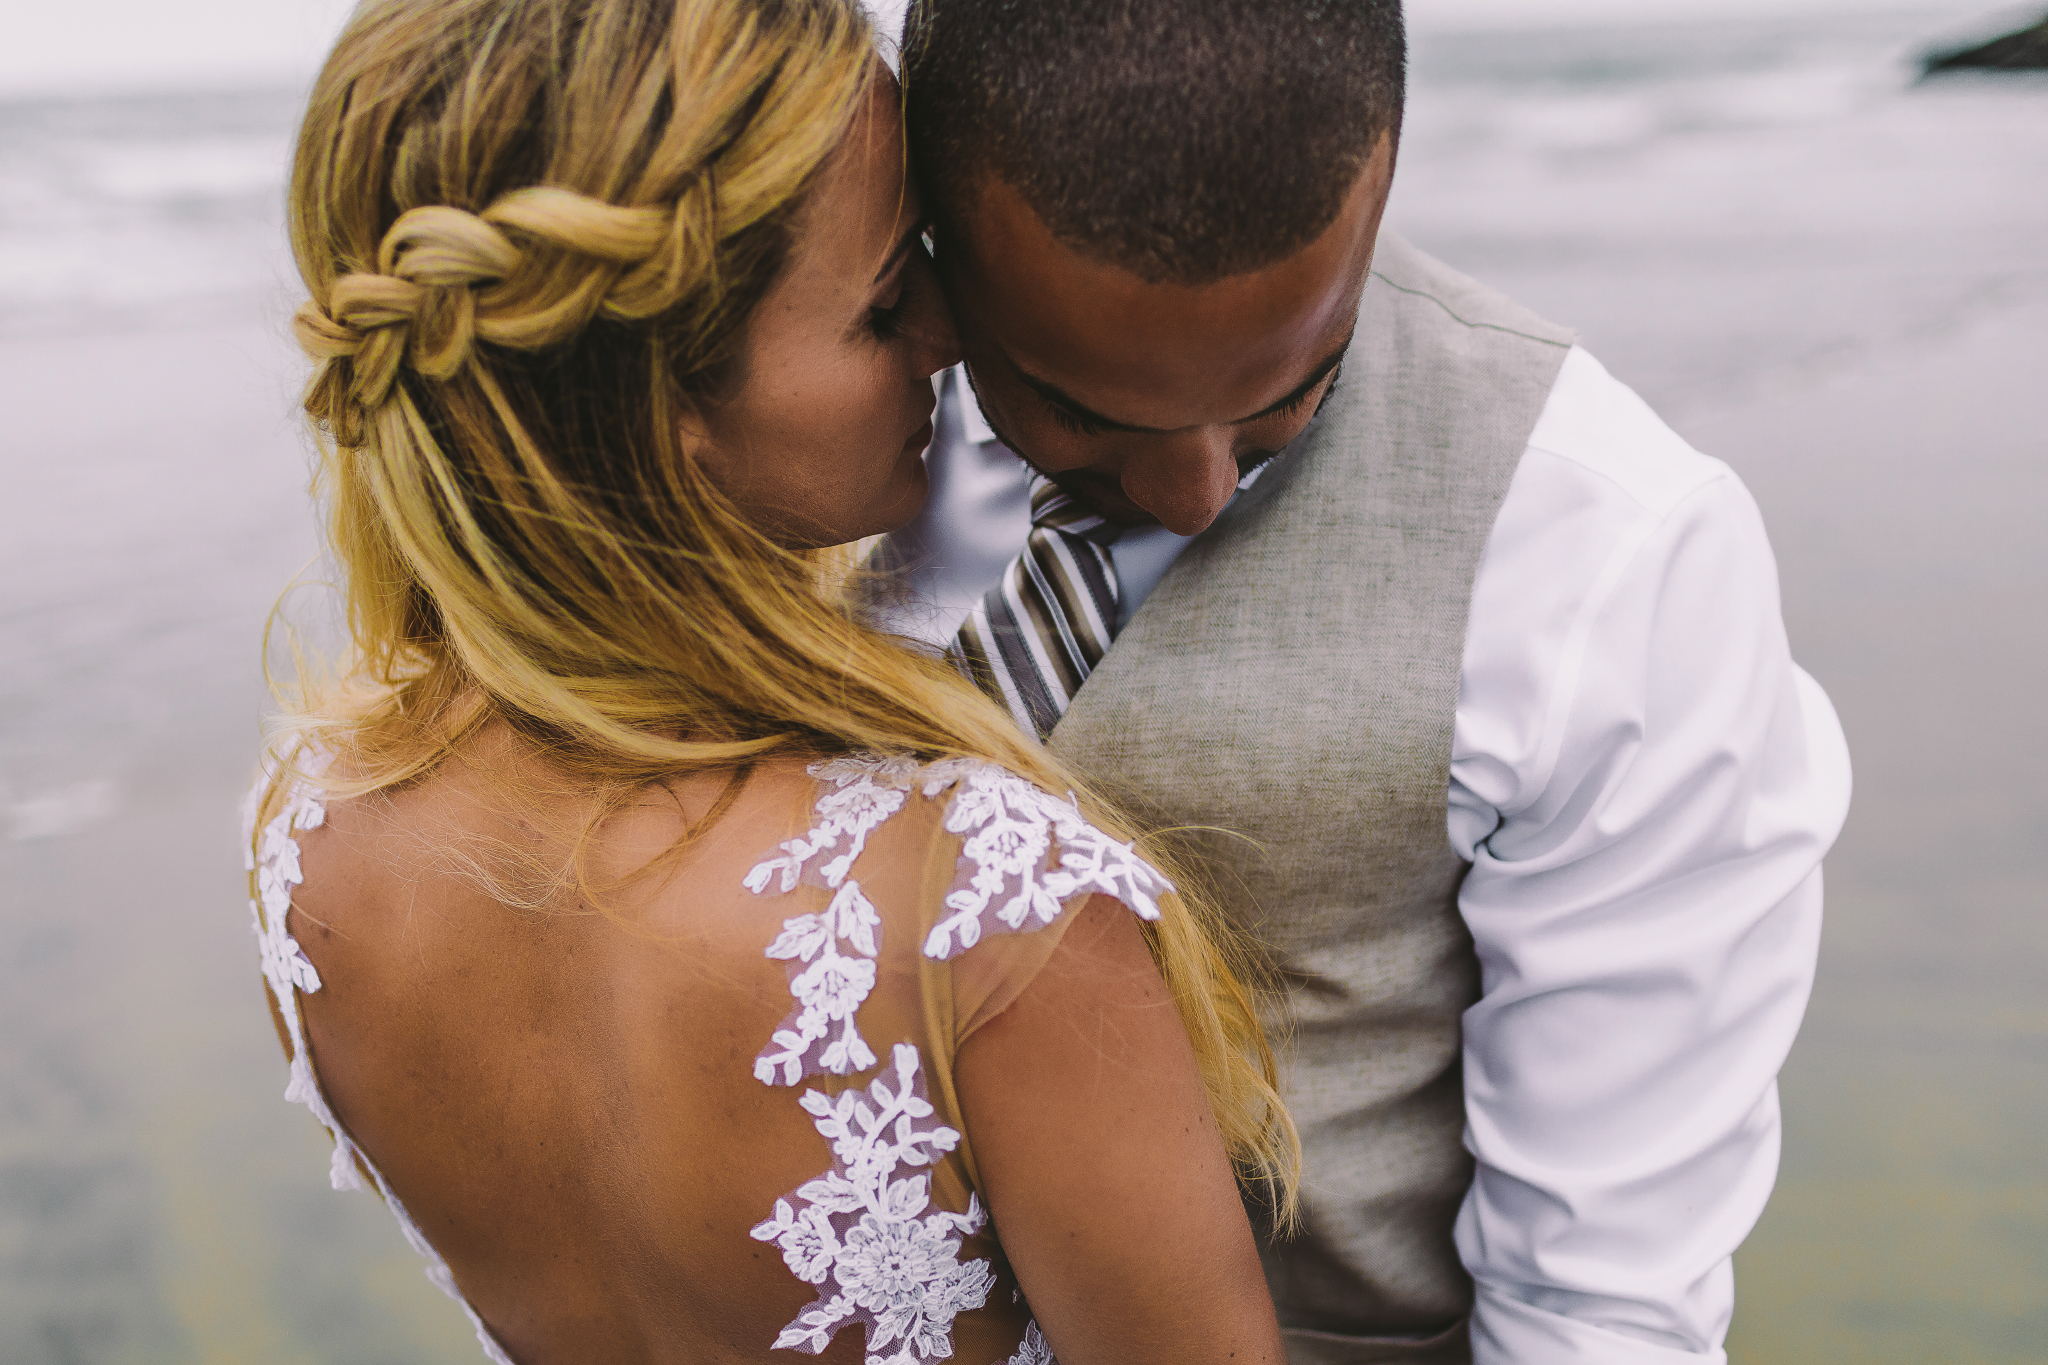 san diego wedding   photographer | bride whispering something into groom's ear while groom looks   down